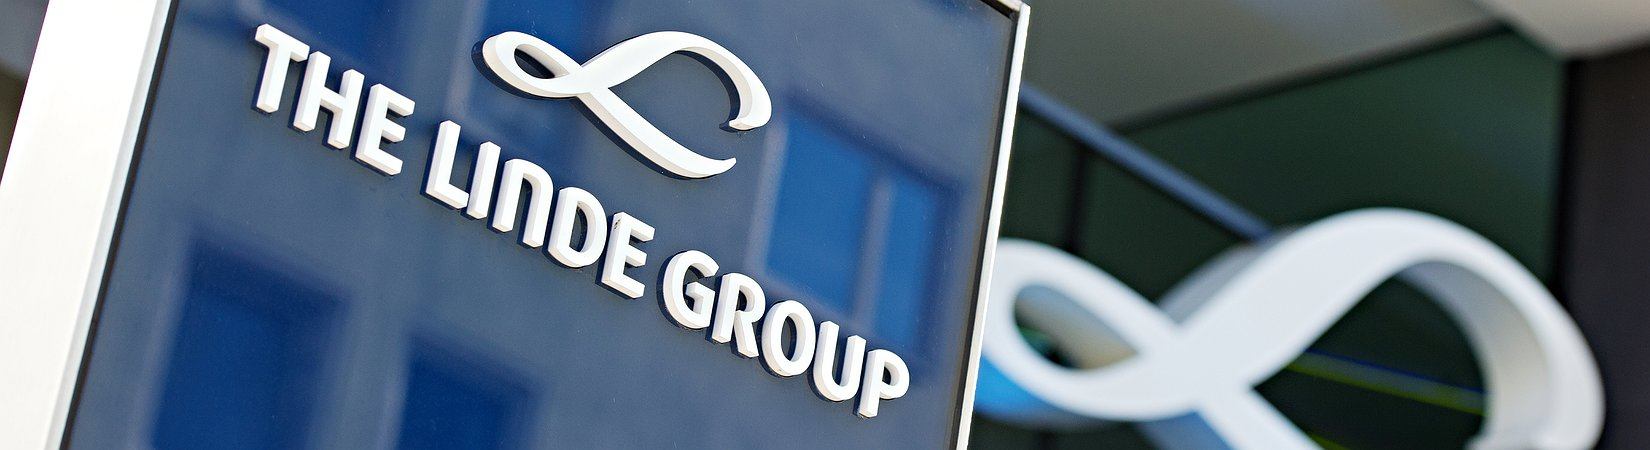 Praxair and Linde to merge into the largest industrial gases company in the world